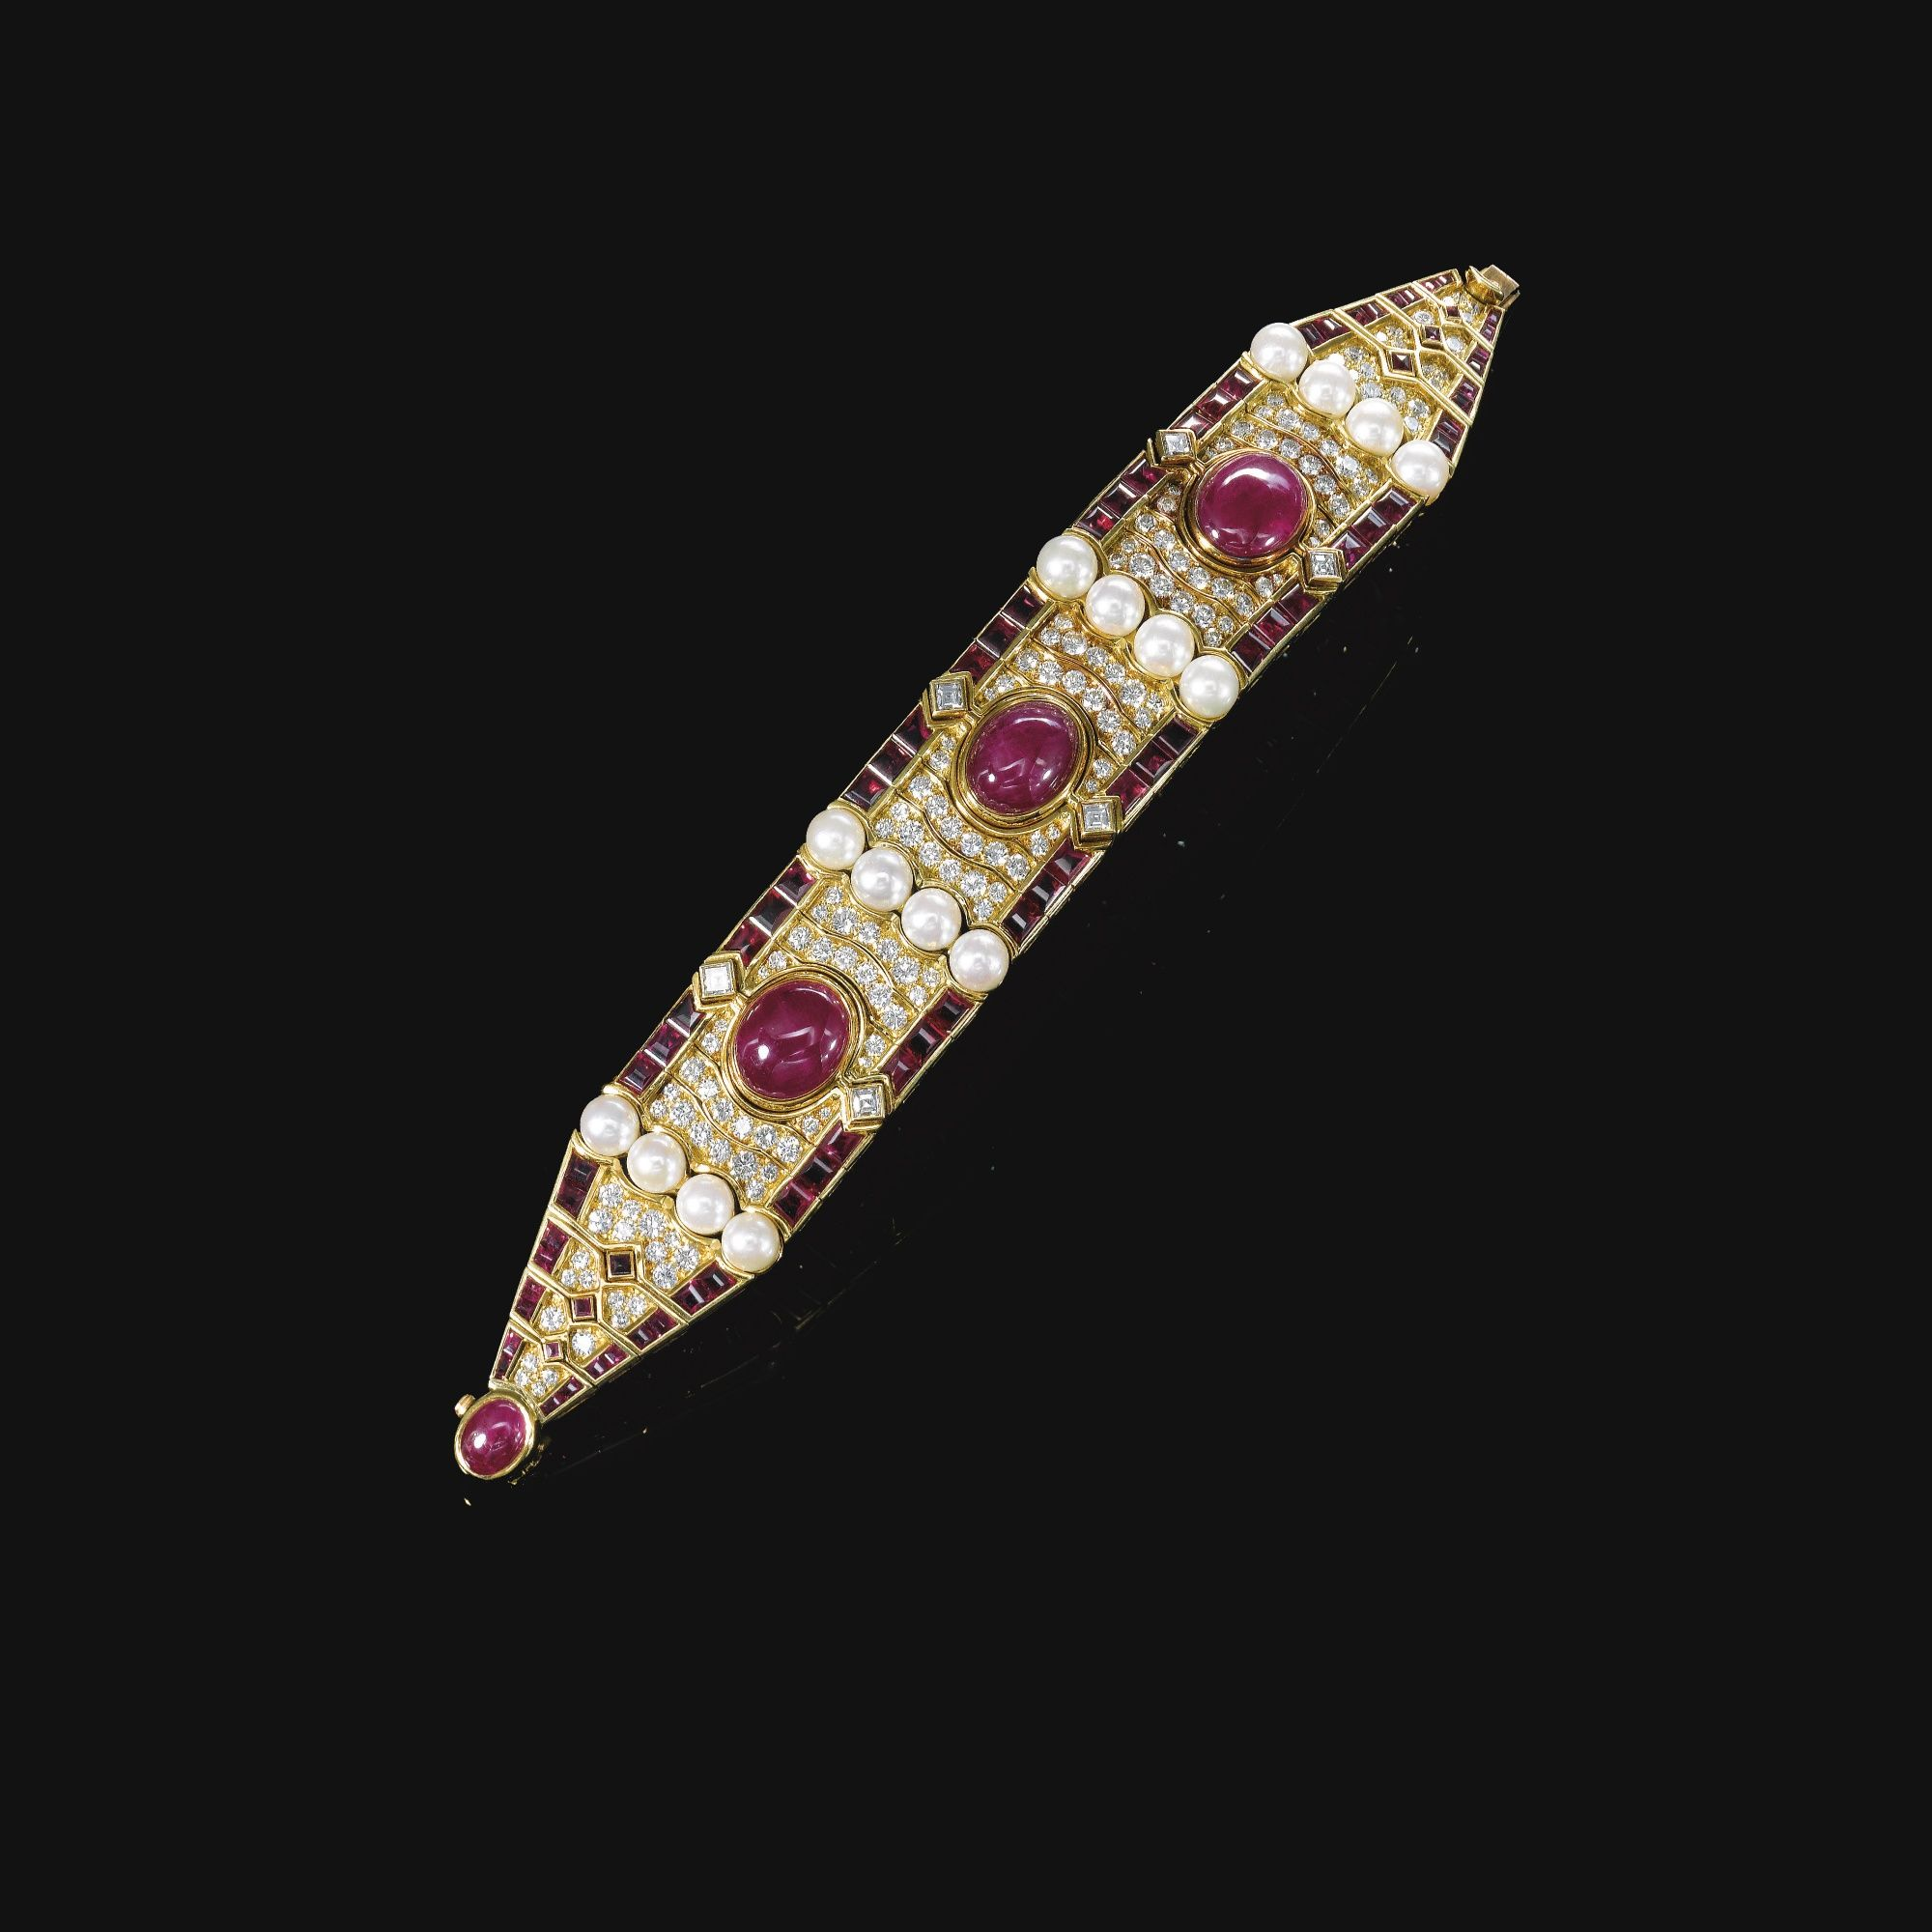 Cultured pearl, ruby and diamond bracelet, Bulgari, 1980s The front set with three oval cabochon rubies, surrounded with undulating lines of brilliant-cut diamonds, framed at either side with calibré-cut rubies, and embellished with rows of cultured pearls, length approximately 177mm, signed Bulgari, Italian assay and maker's marks.